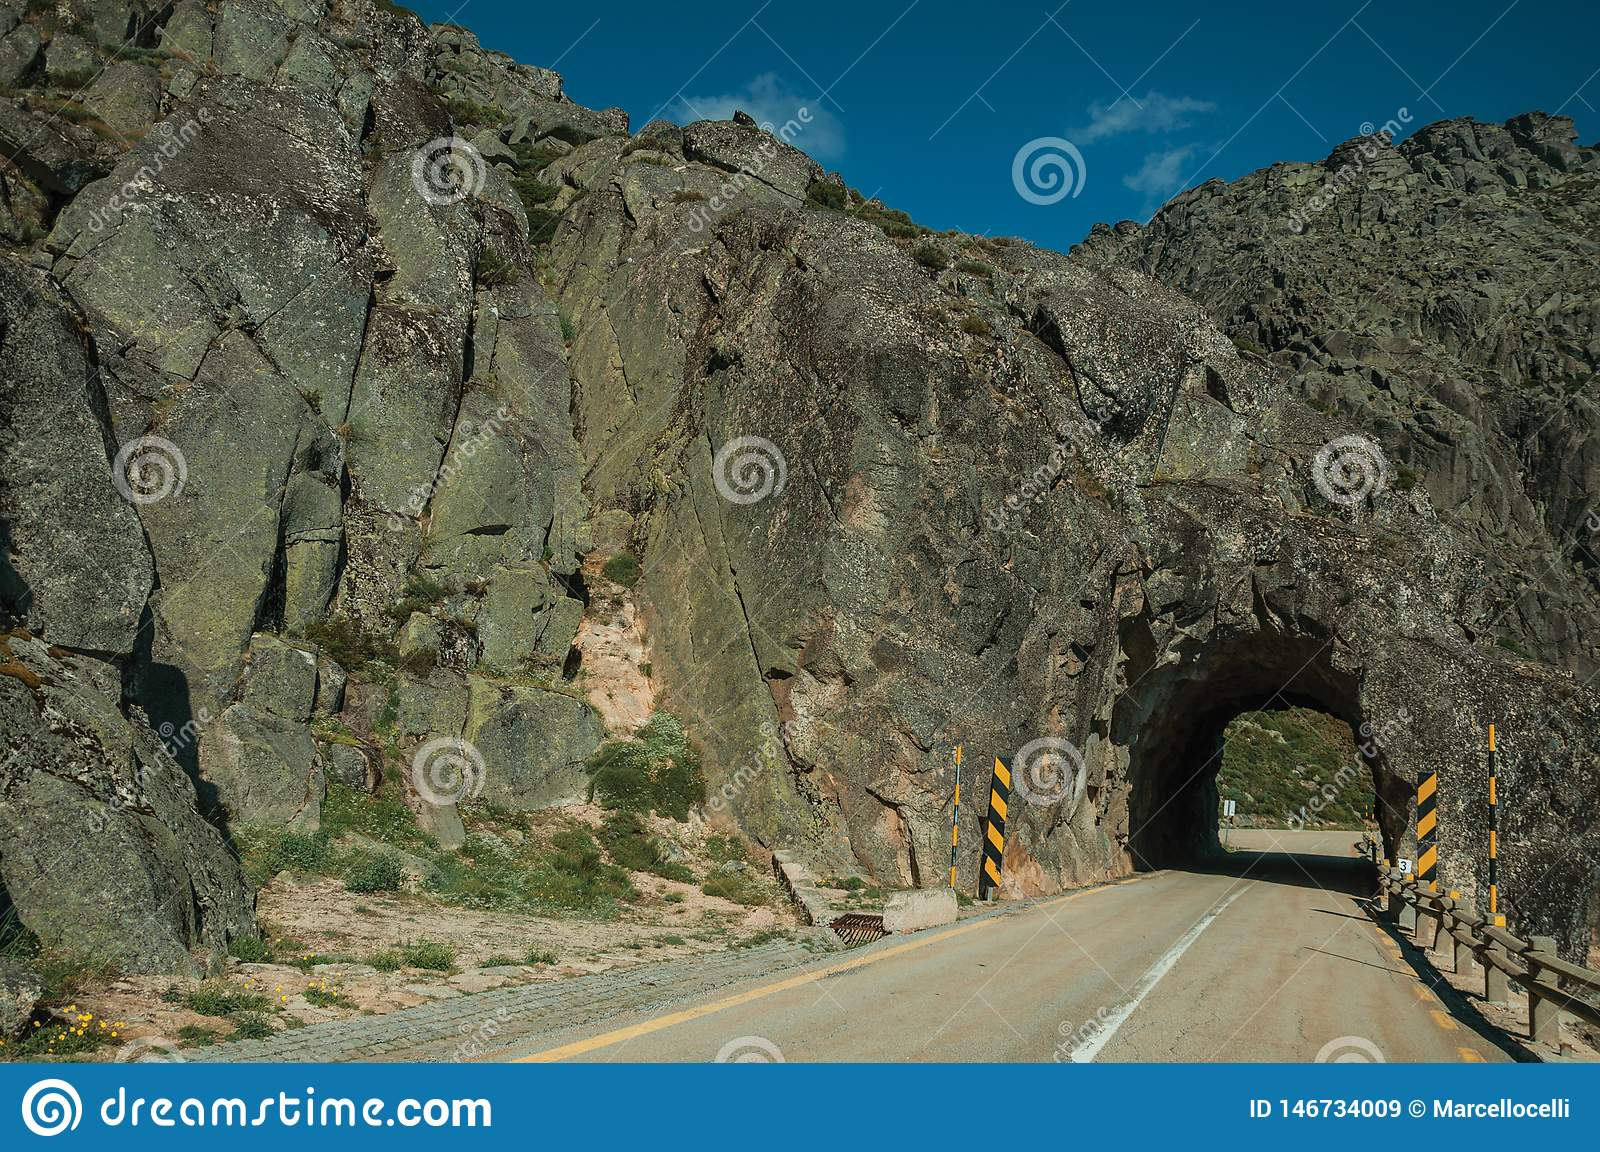 Road on rocky landscape passing through tunnel